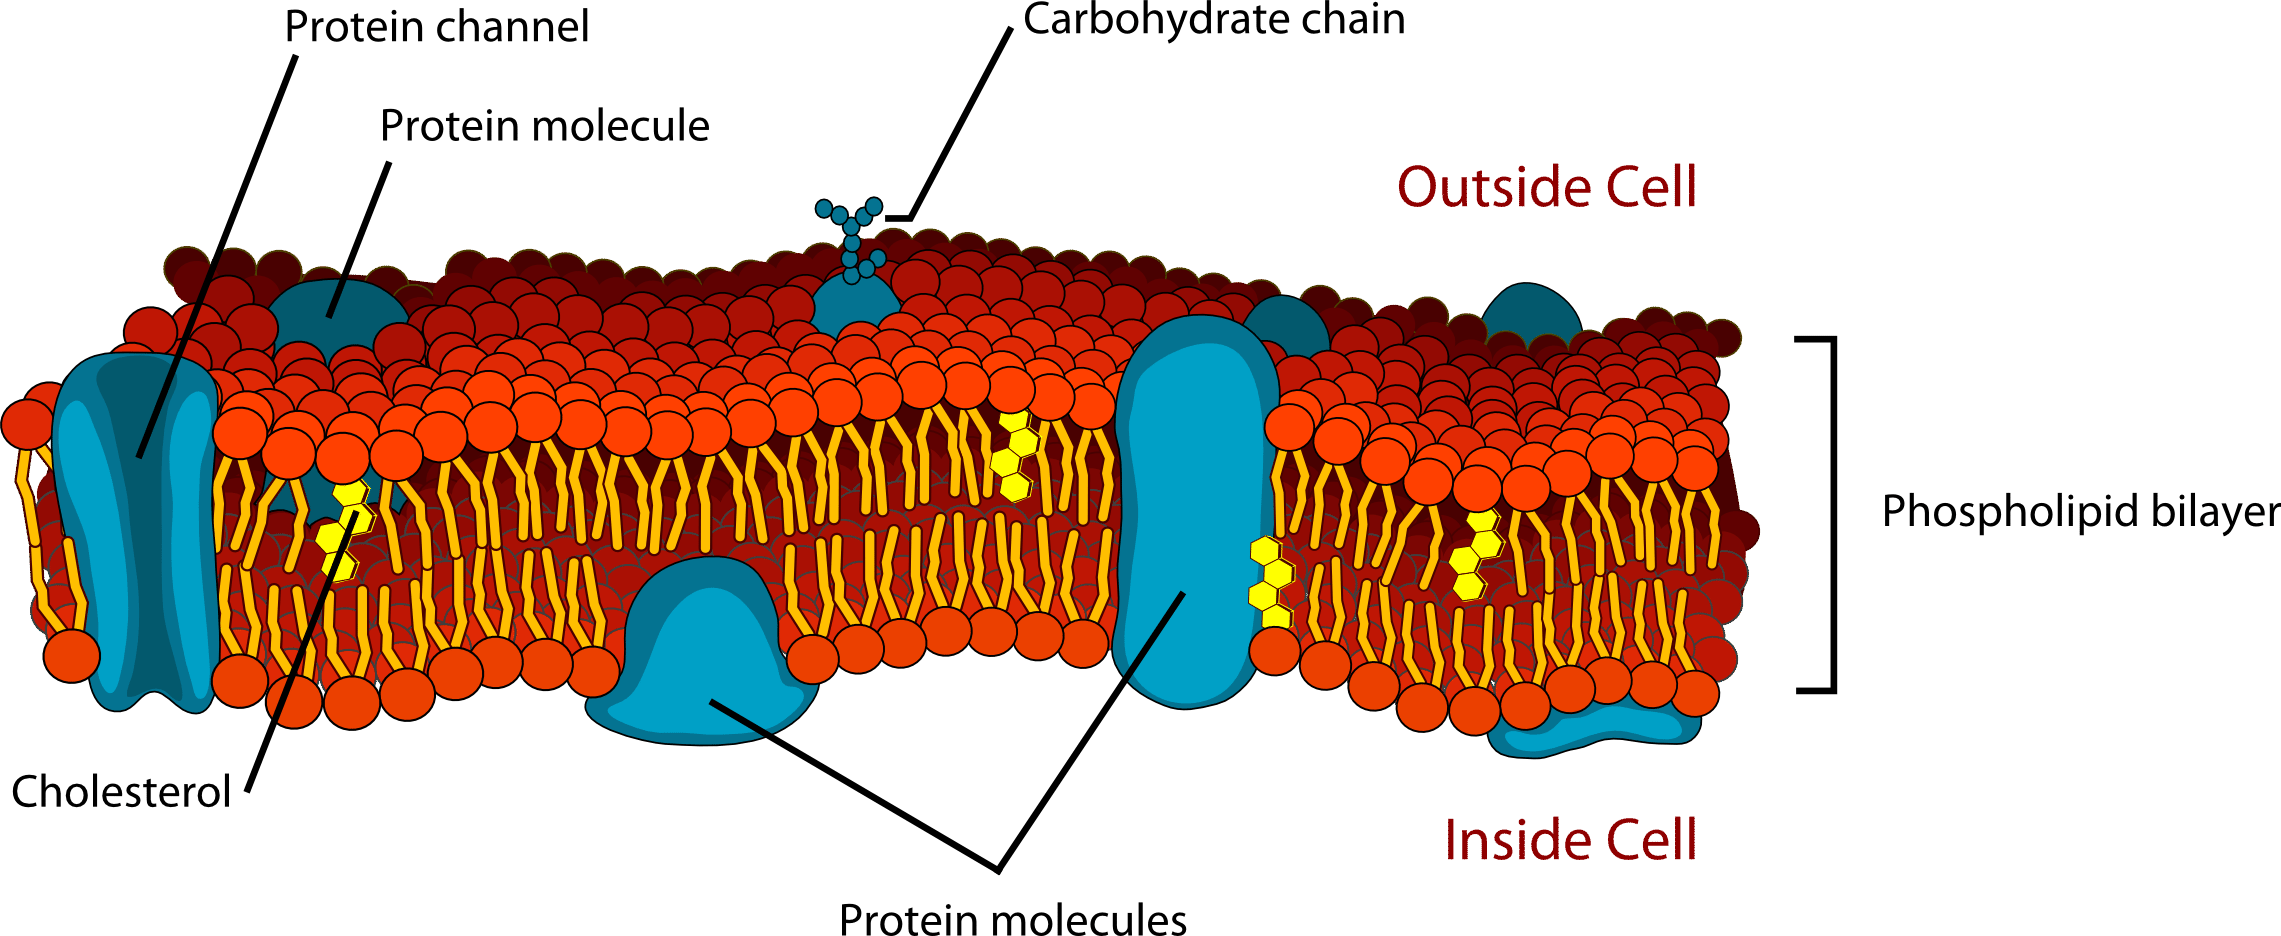 cell membrane diagram wiring kohler 27 hp 14 3 phospholipids in membranes chemistry libretexts